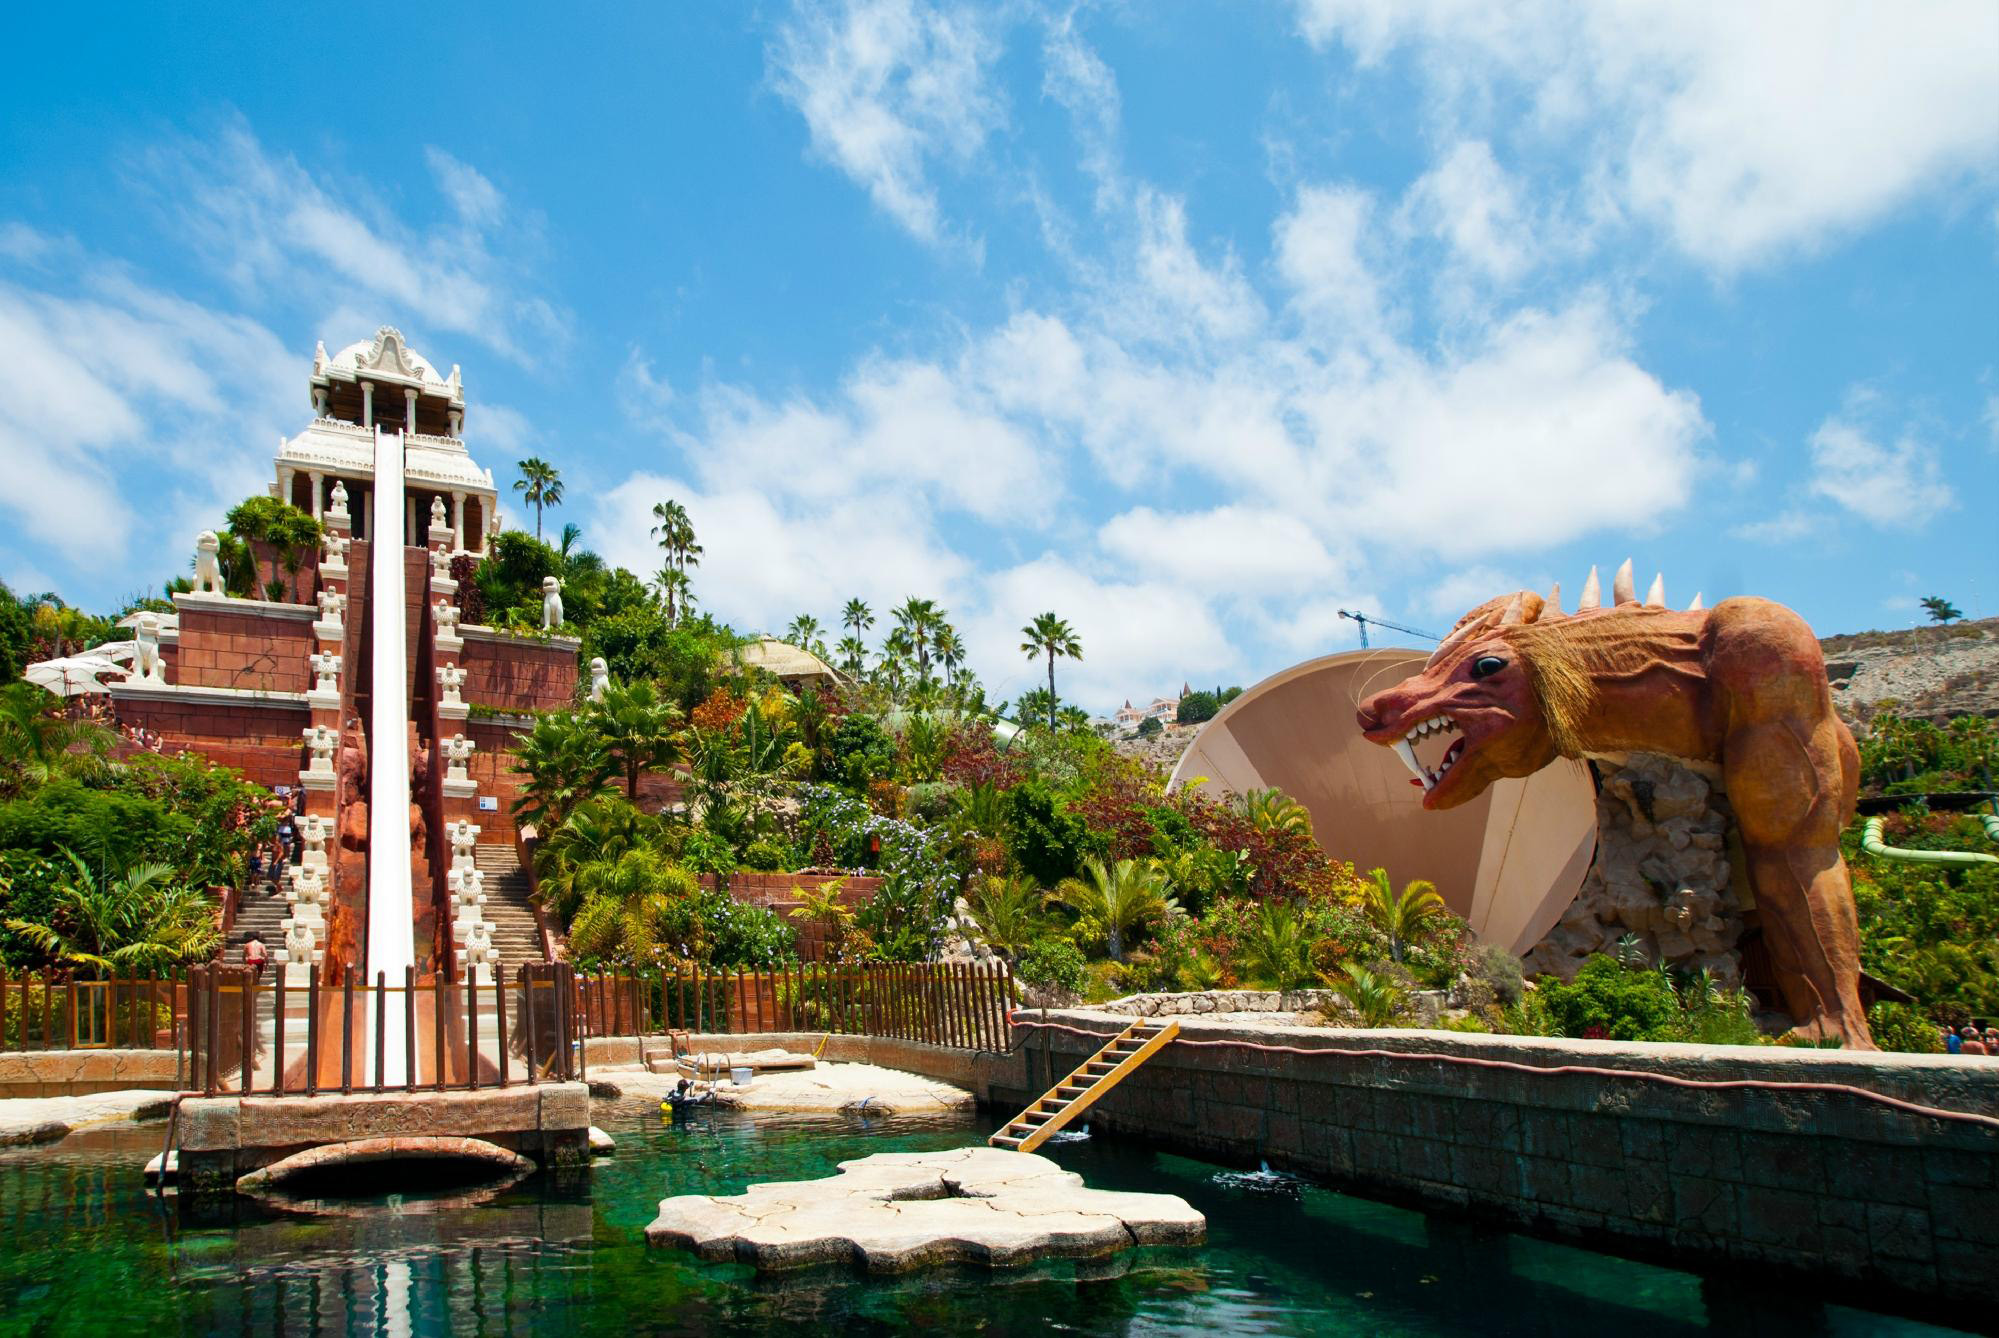 Siam Park in Adeje, Spain is the top water park in the world, according to the TripAdvisor Travelers' Choice Amusement Parks and Water Parks.